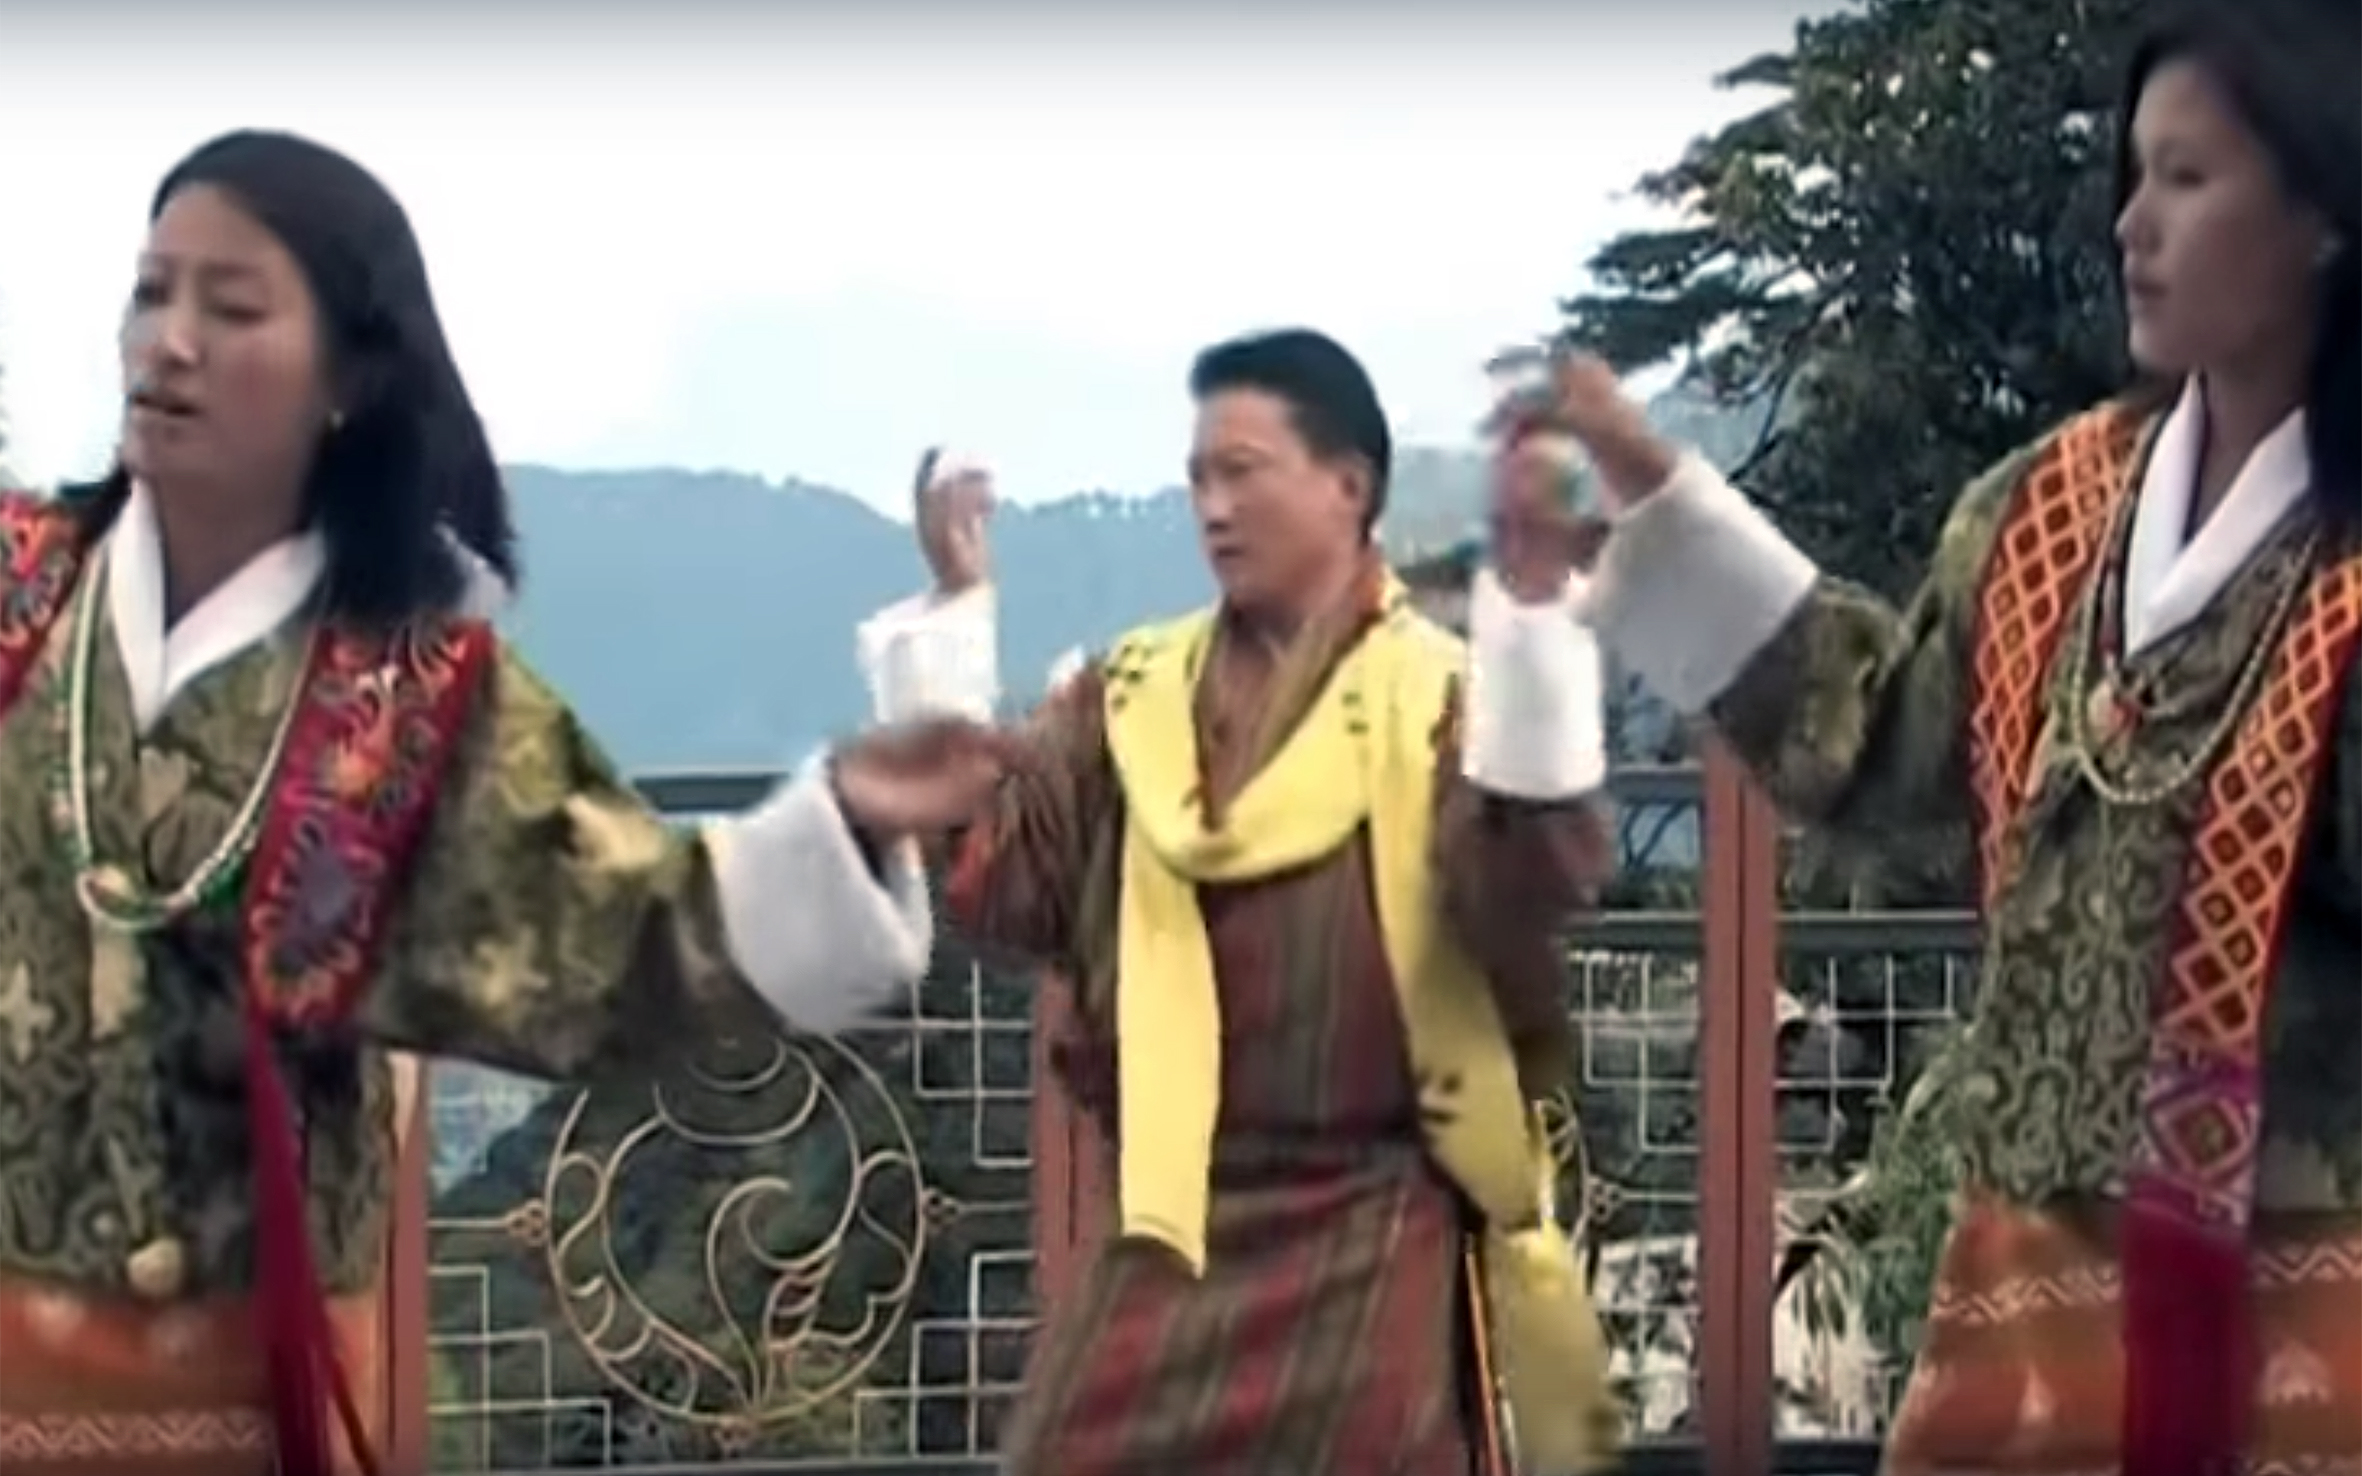 903.traditional nomadic danceS / Bhutan - traditional nomadic danceS by the Nomadic people of Bhutan who live in the eastern (Yak Cham Dance) or western (Layab Dance) parts of the country, are known for their particular dance expressions. The nomads who live in the eastern Bhutan perform dances to honour the local deity known as Aum Jomo (Goddess). The western nomadic yak herders dance is usually performed by men who sometimes dance inside the representation of a yak body.